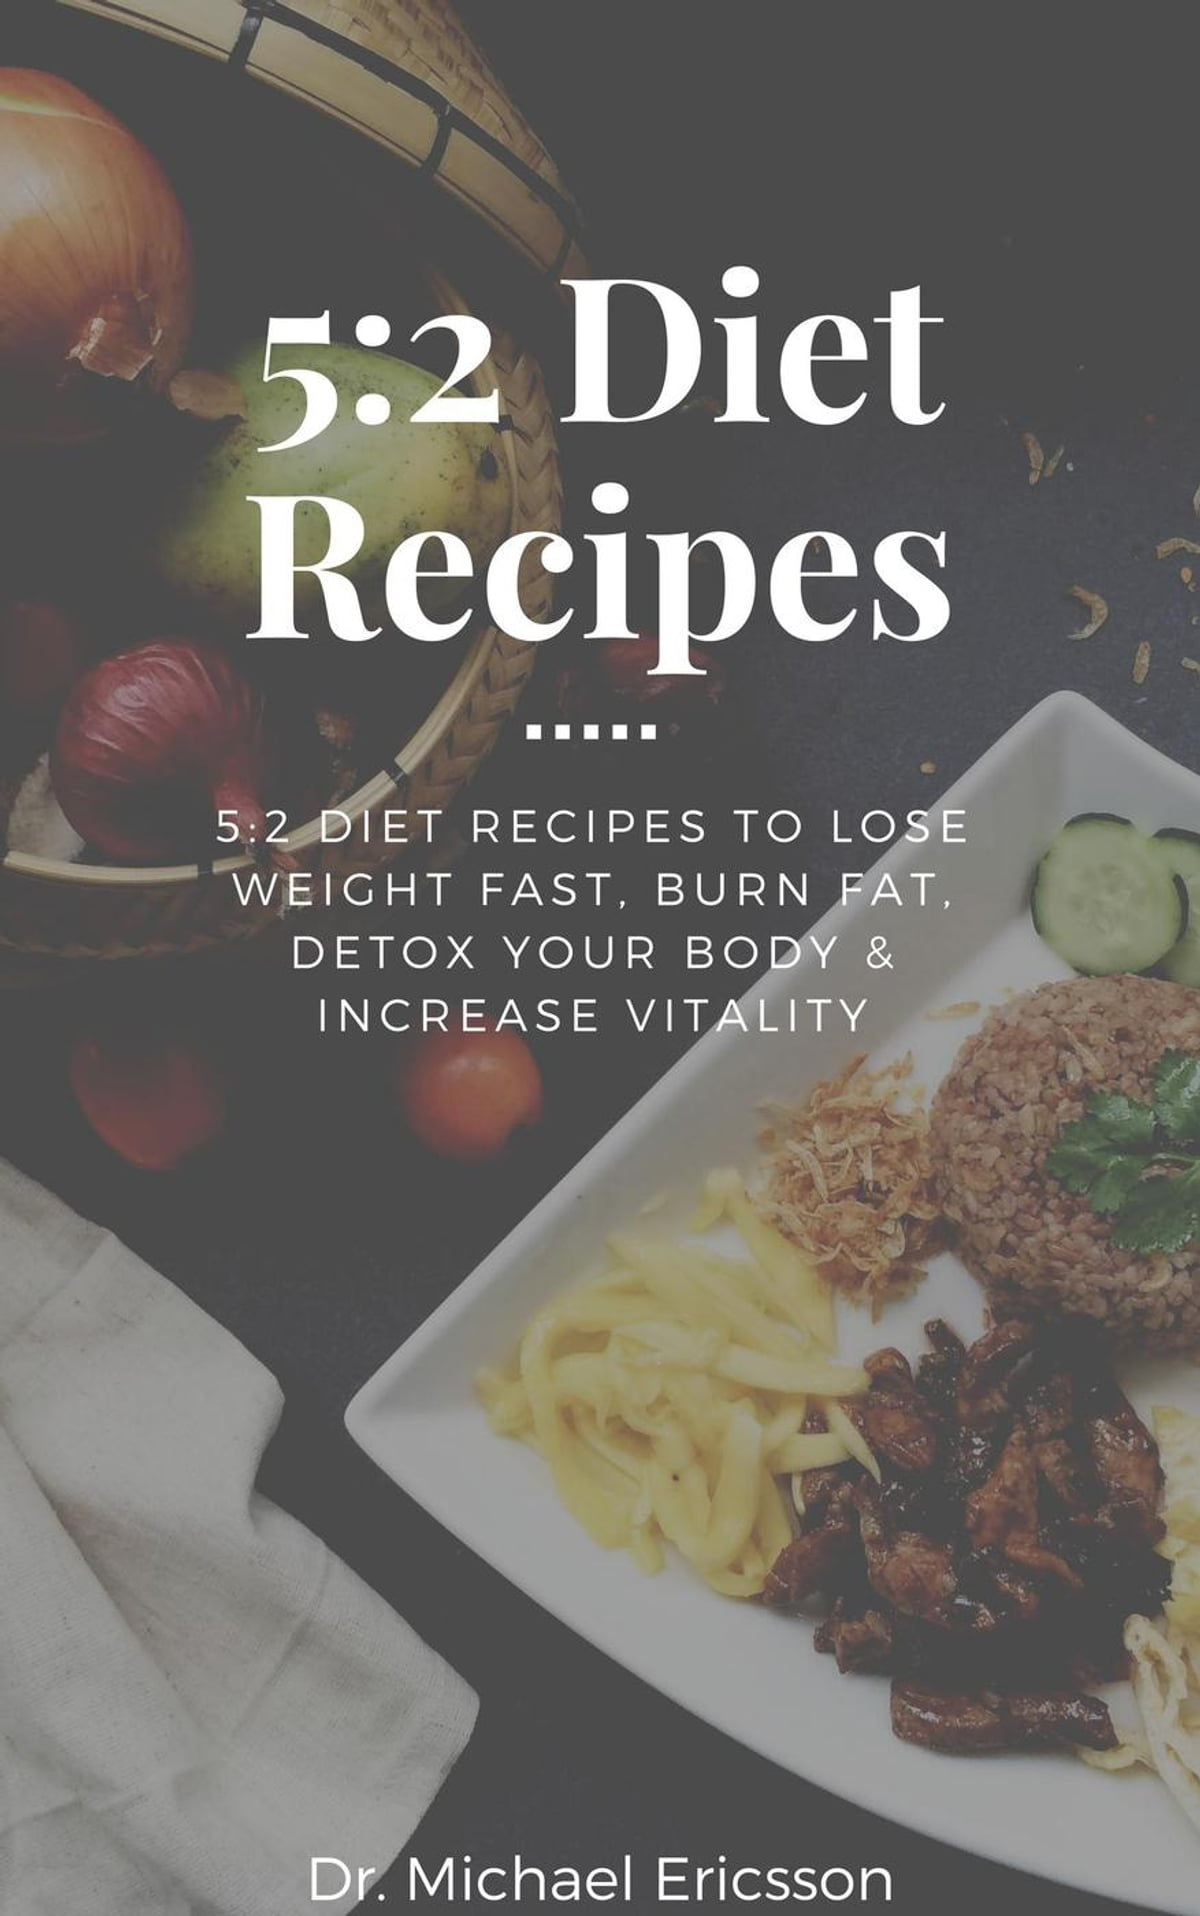 5 2 Diet Recipes 5 2 Diet Recipes To Lose Weight Fast Burn Fat Detox Your Body Increase Vitality Ebook By Dr Michael Ericsson 9781386078258 Rakuten Kobo United States